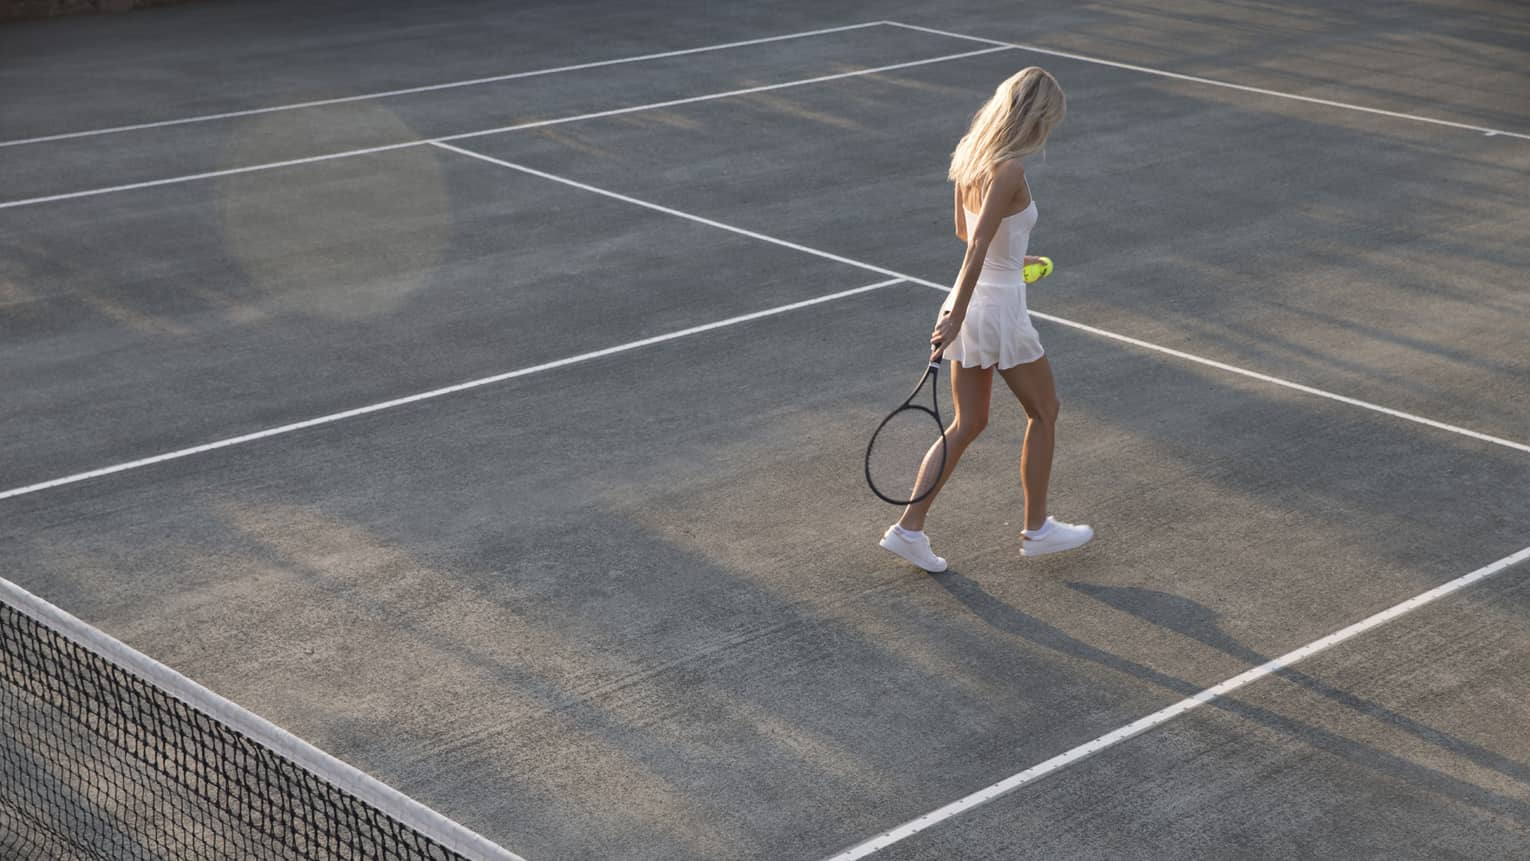 A woman wearing a white tennis dress and shoes walks toward the far end of the tennis court holding her racket and tennis ball